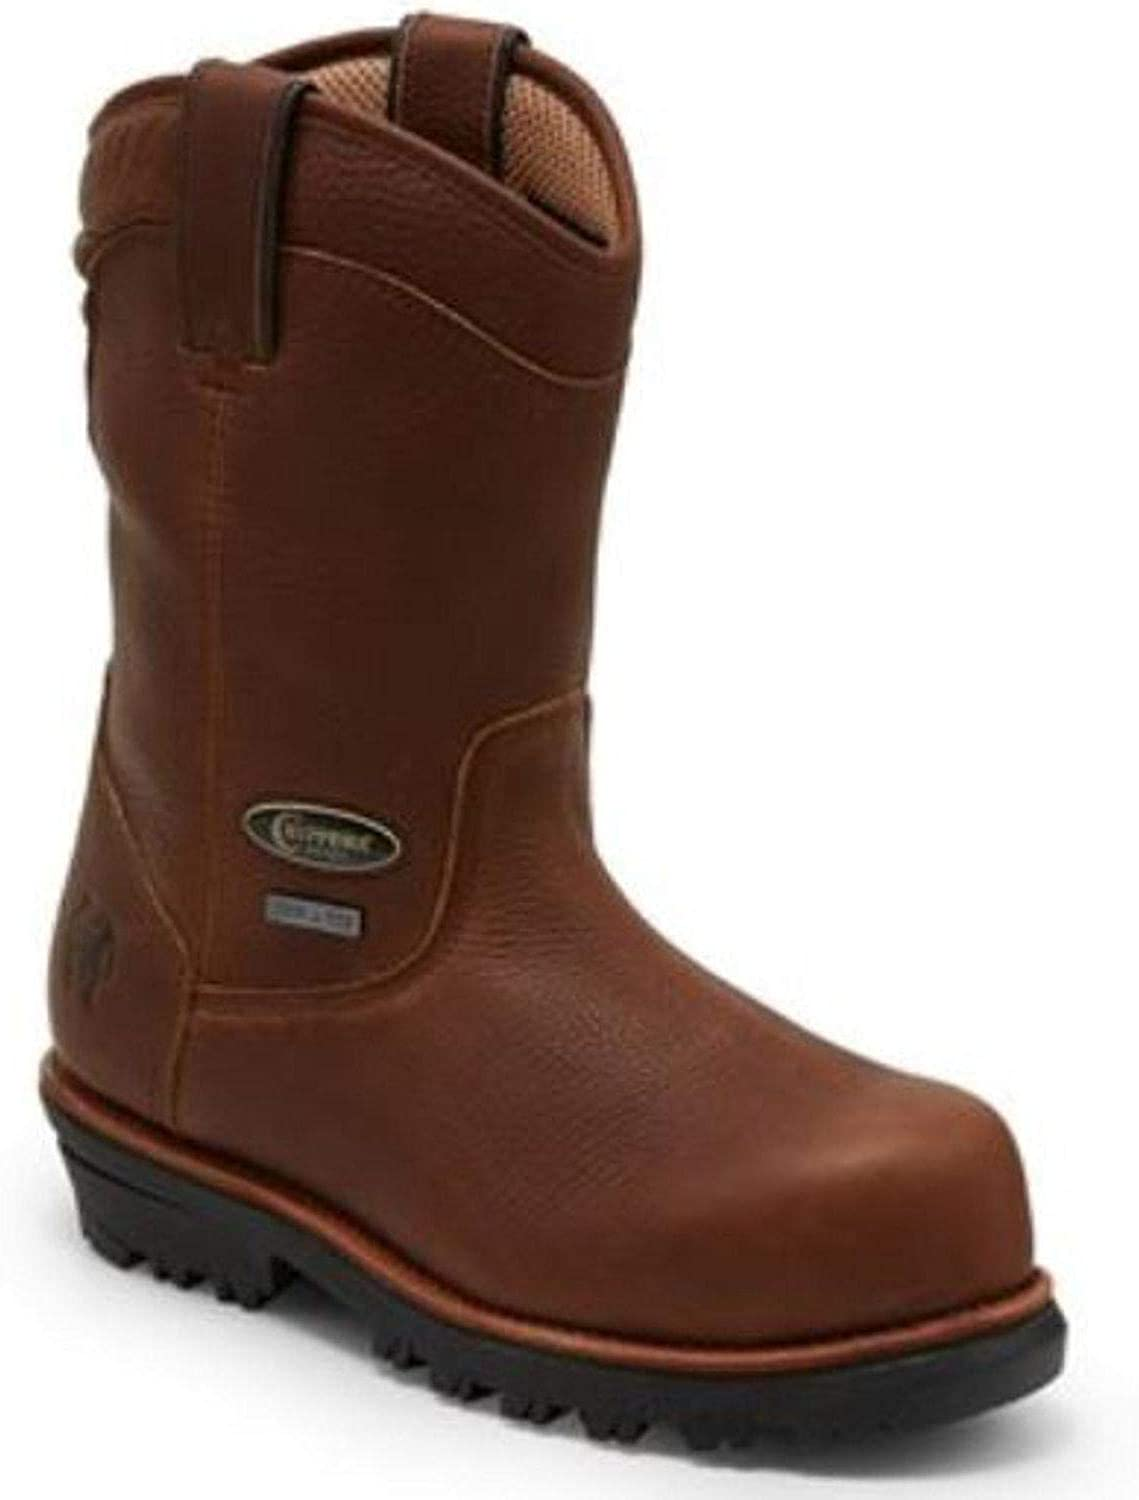 Chippewa Men's 20510 11In Honcho W Comp On Pull Wholesale Toe Ranking TOP3 - P